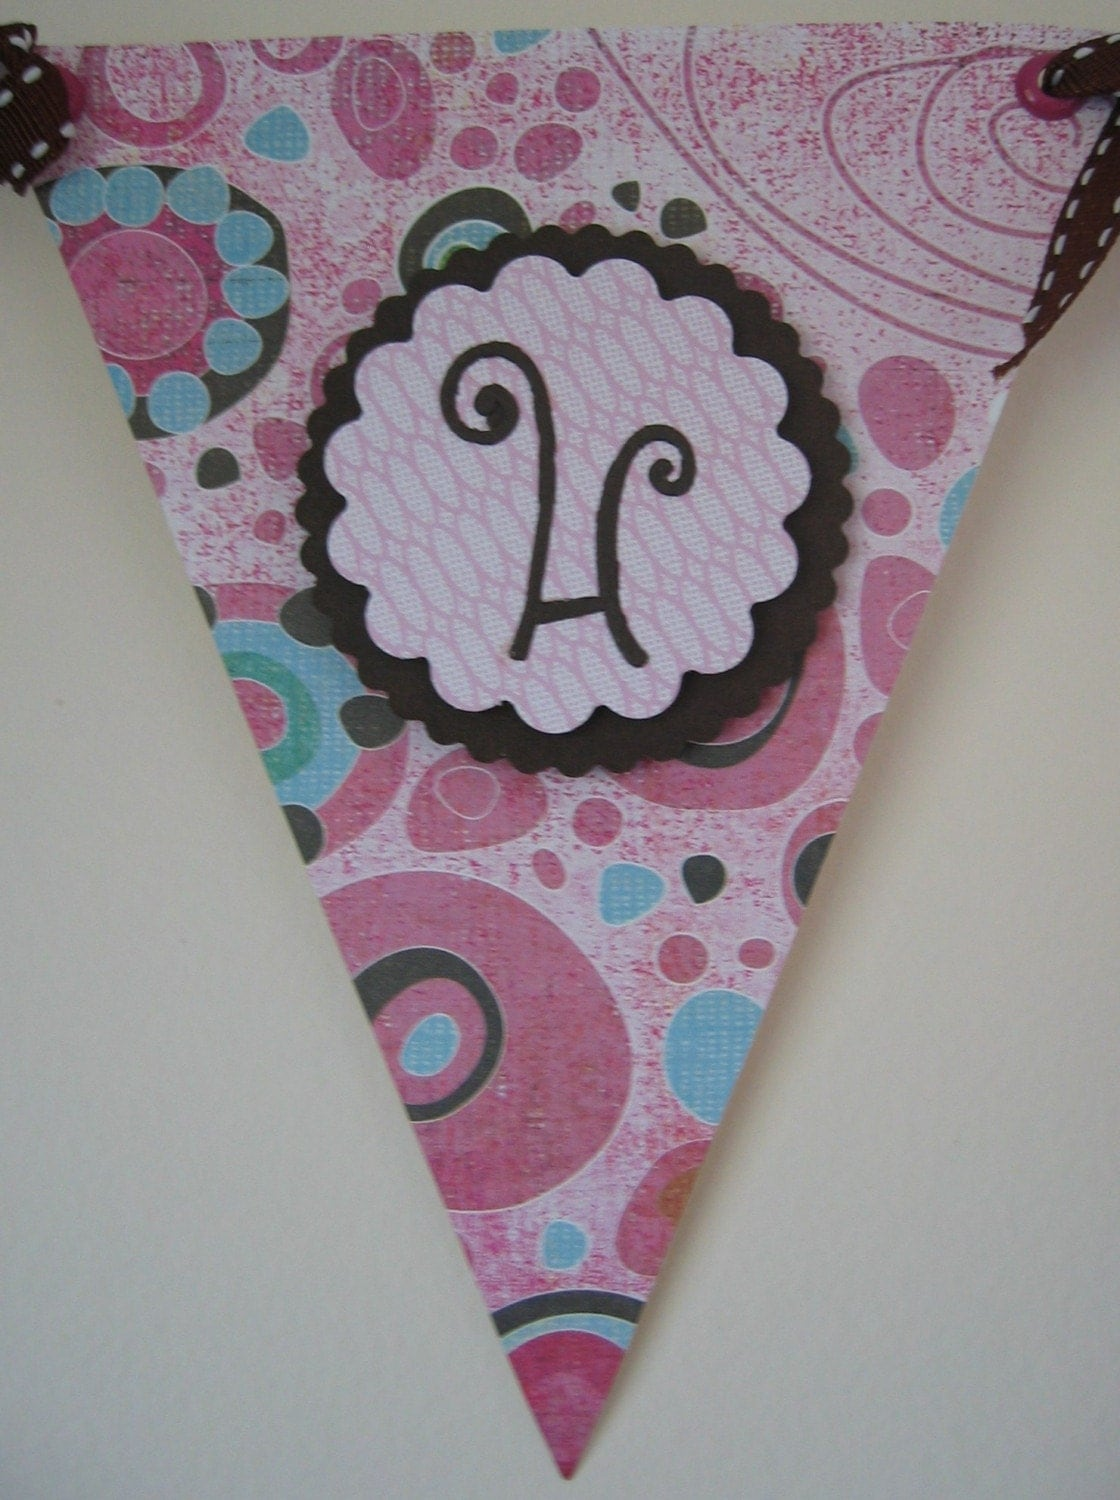 Happy Easter Bunting Banner - Reserved for the Handmade with Love Winter Giveaway Blog Hop